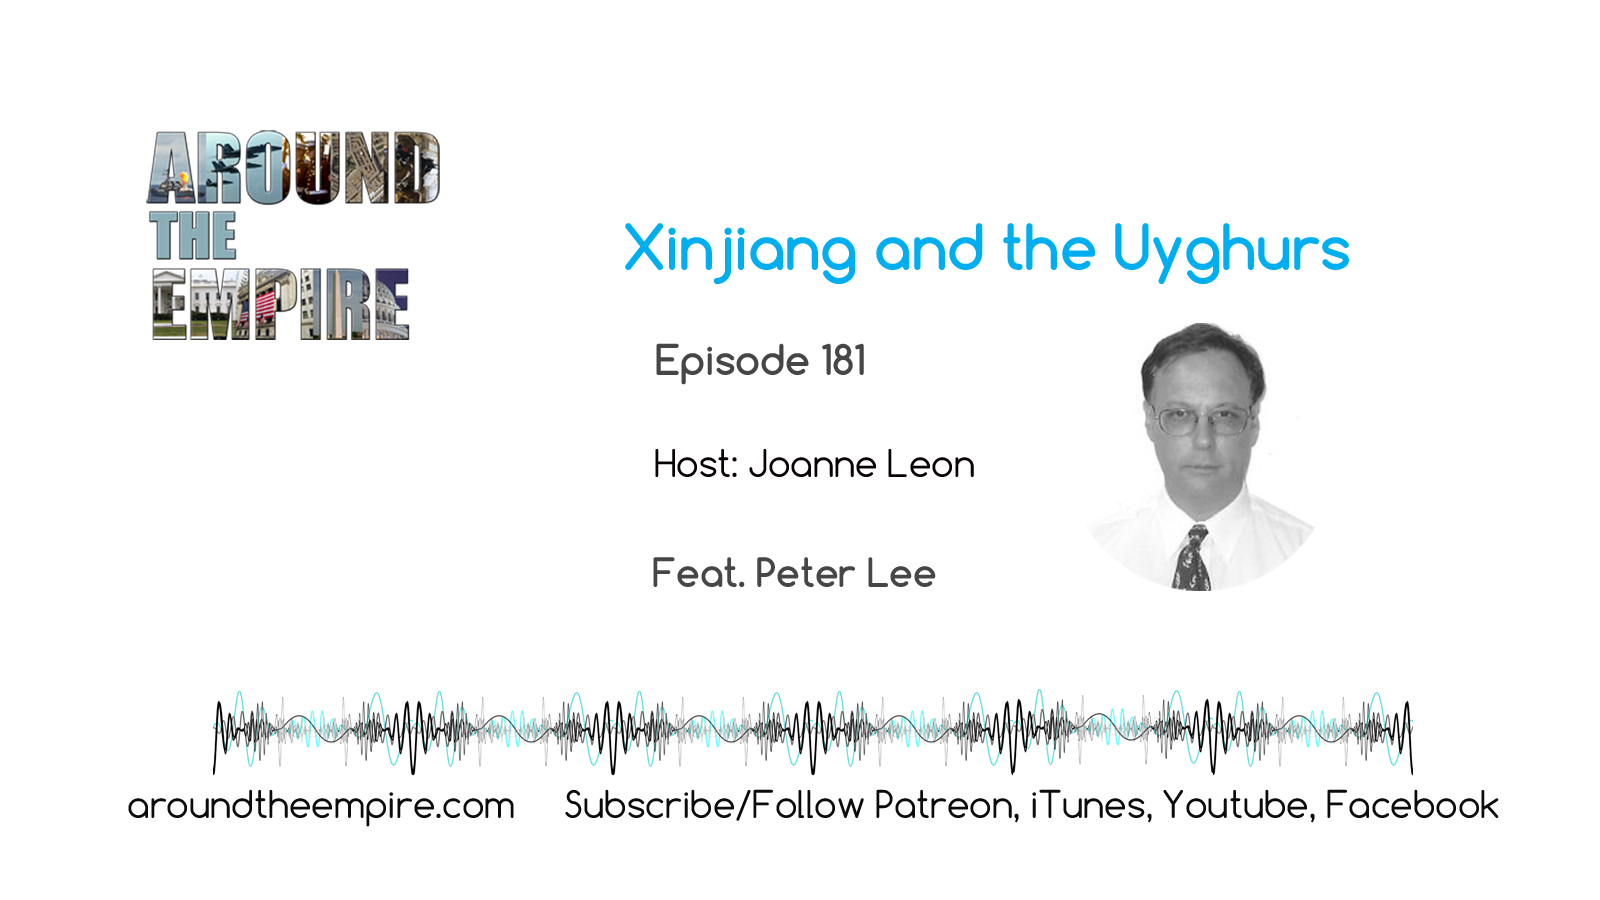 Ep 181 Xinjiang and the Uyghurs feat Peter Lee